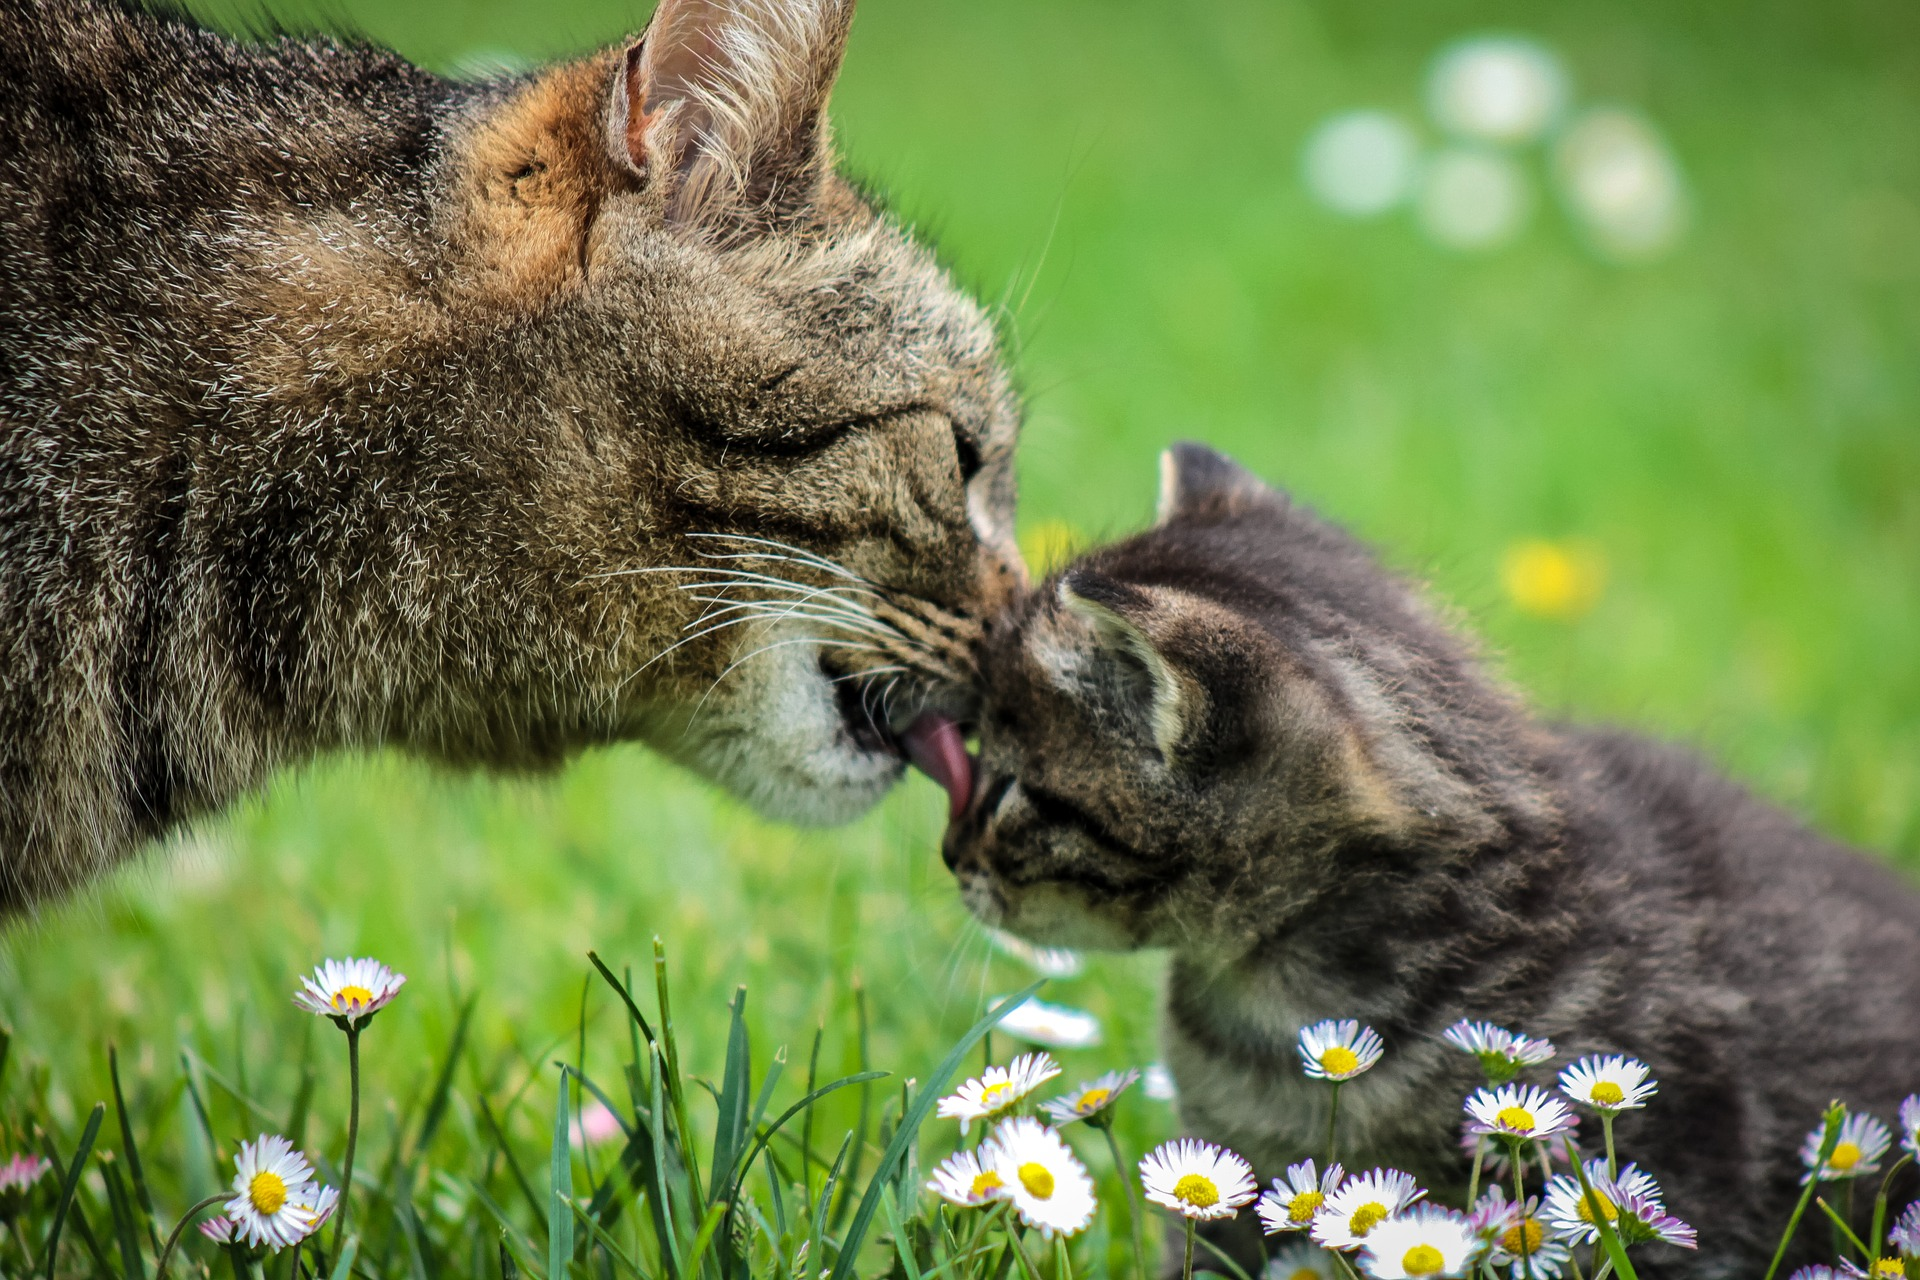 mom cat licking a kitten in grass